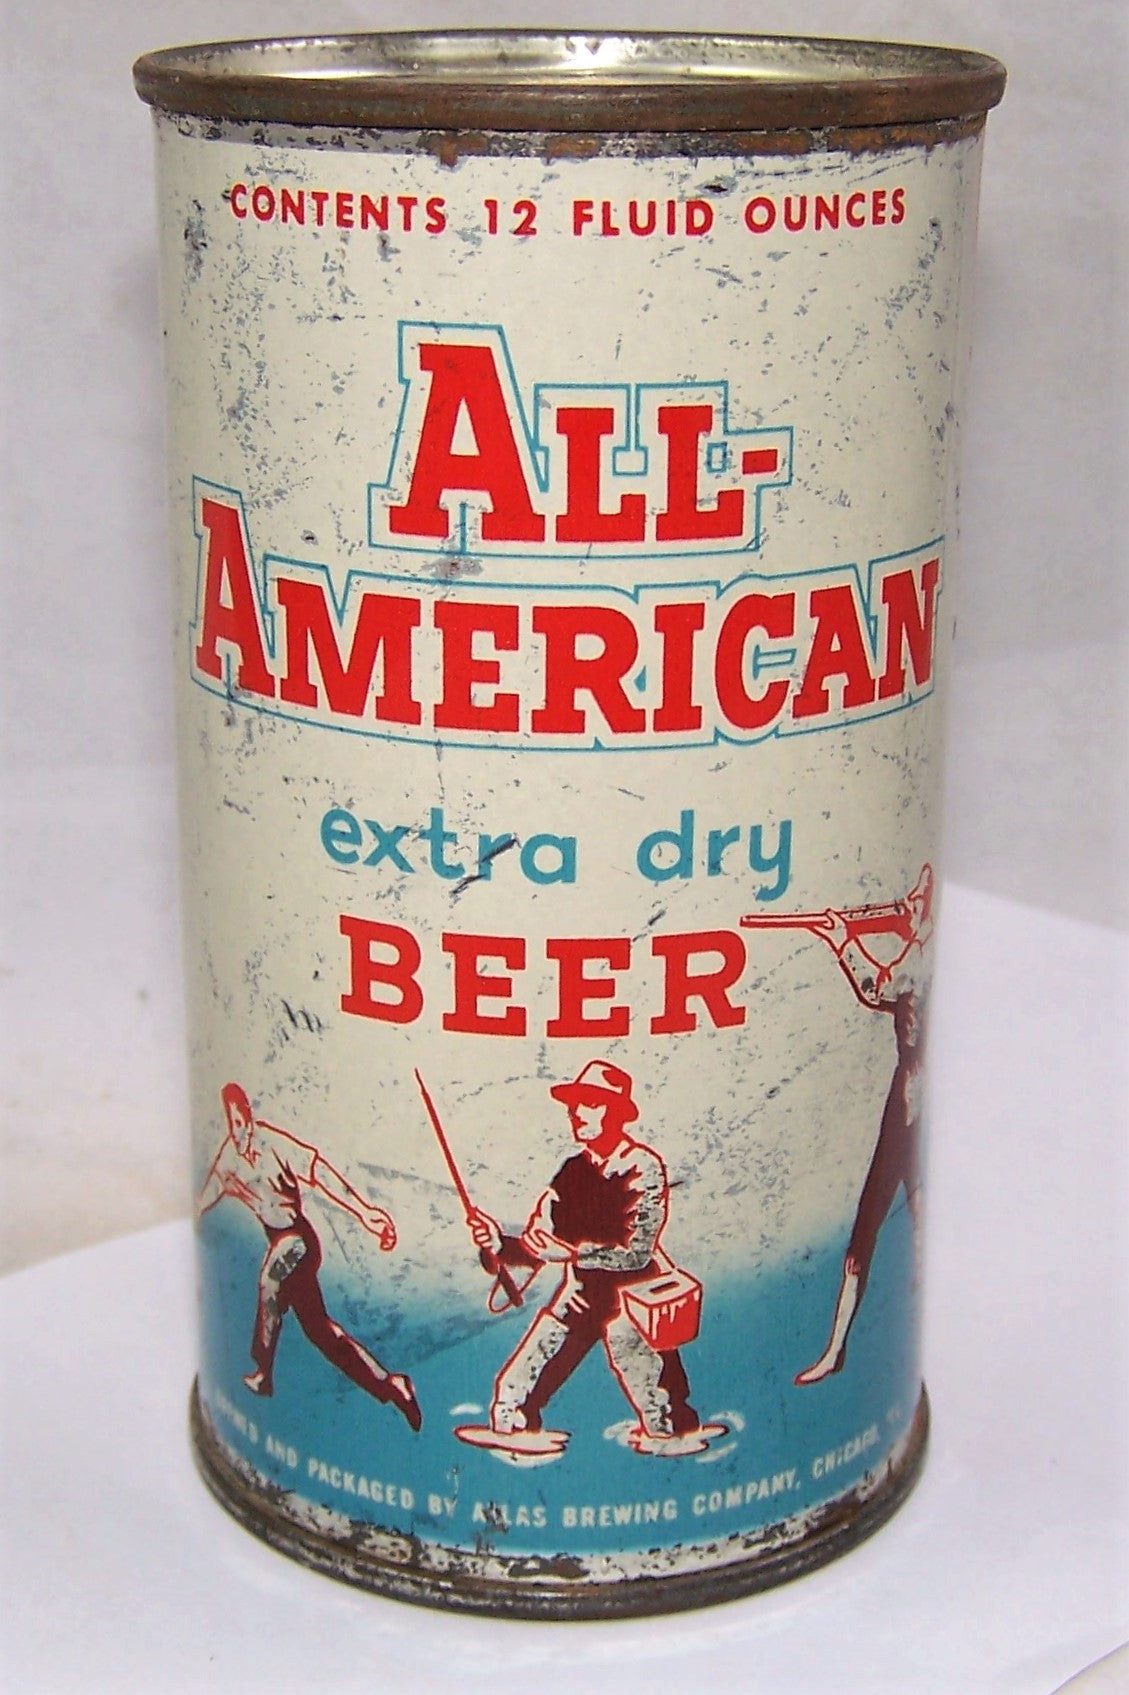 All American, Atlas Brewing, Chicago, Grade 2+